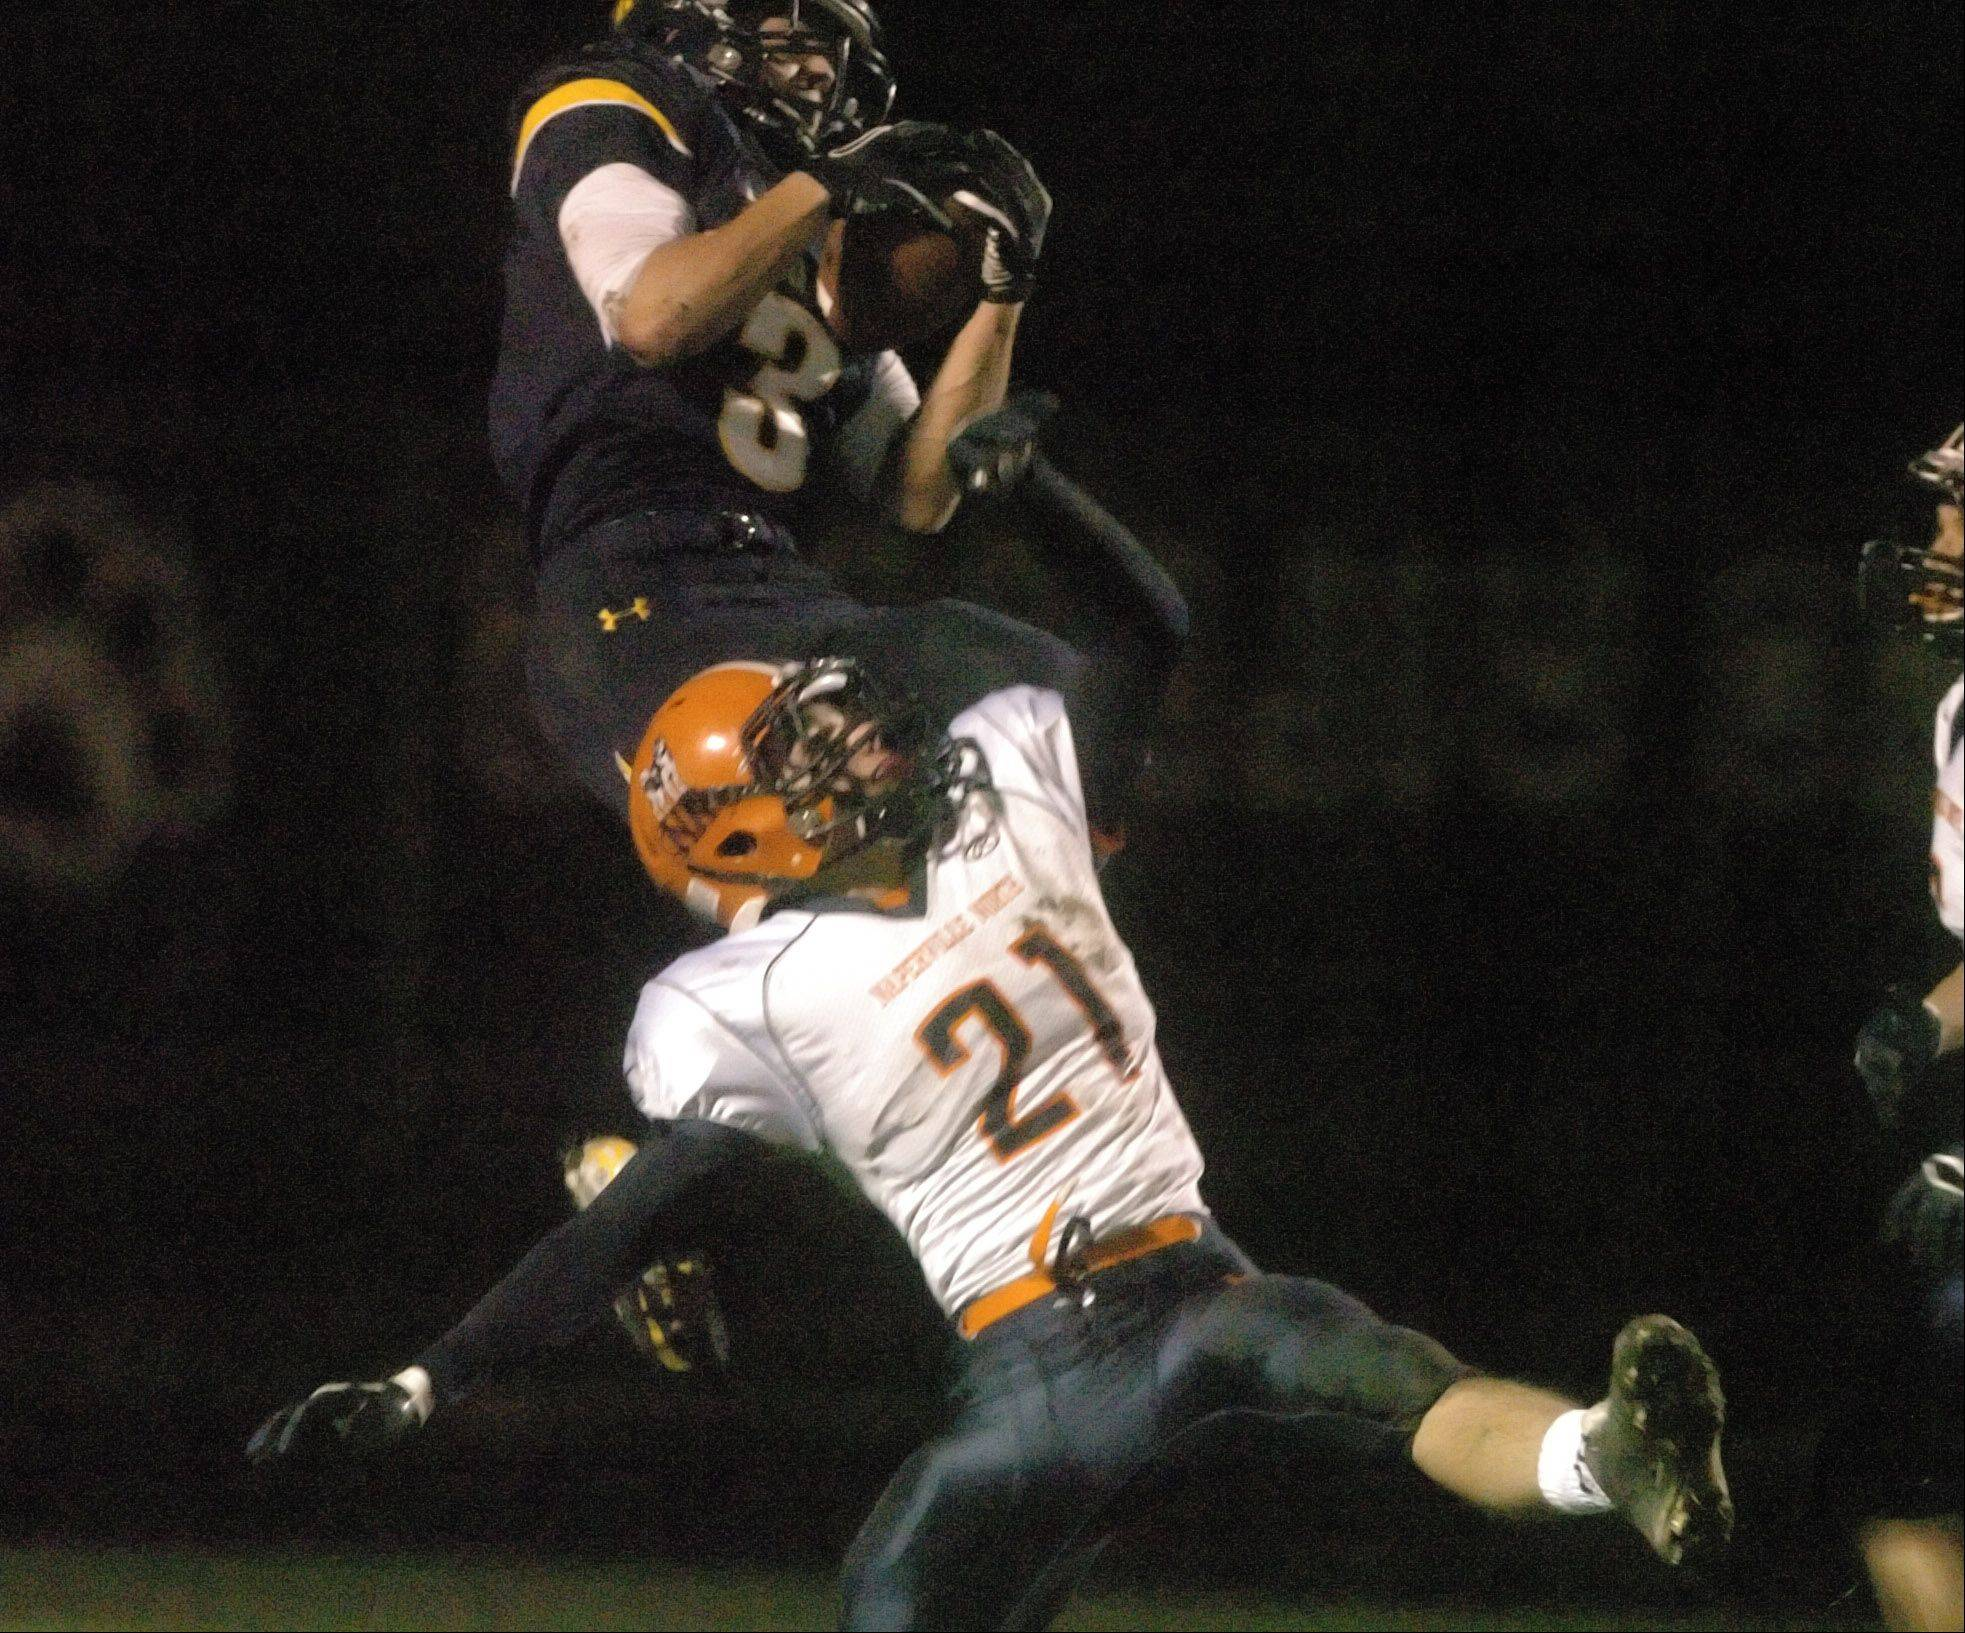 Neuqua Valley's Mikey Dudek pulls down a pass while Naperville North's Danny Schertz attempts to break up the play durying Friday's football playoff game.